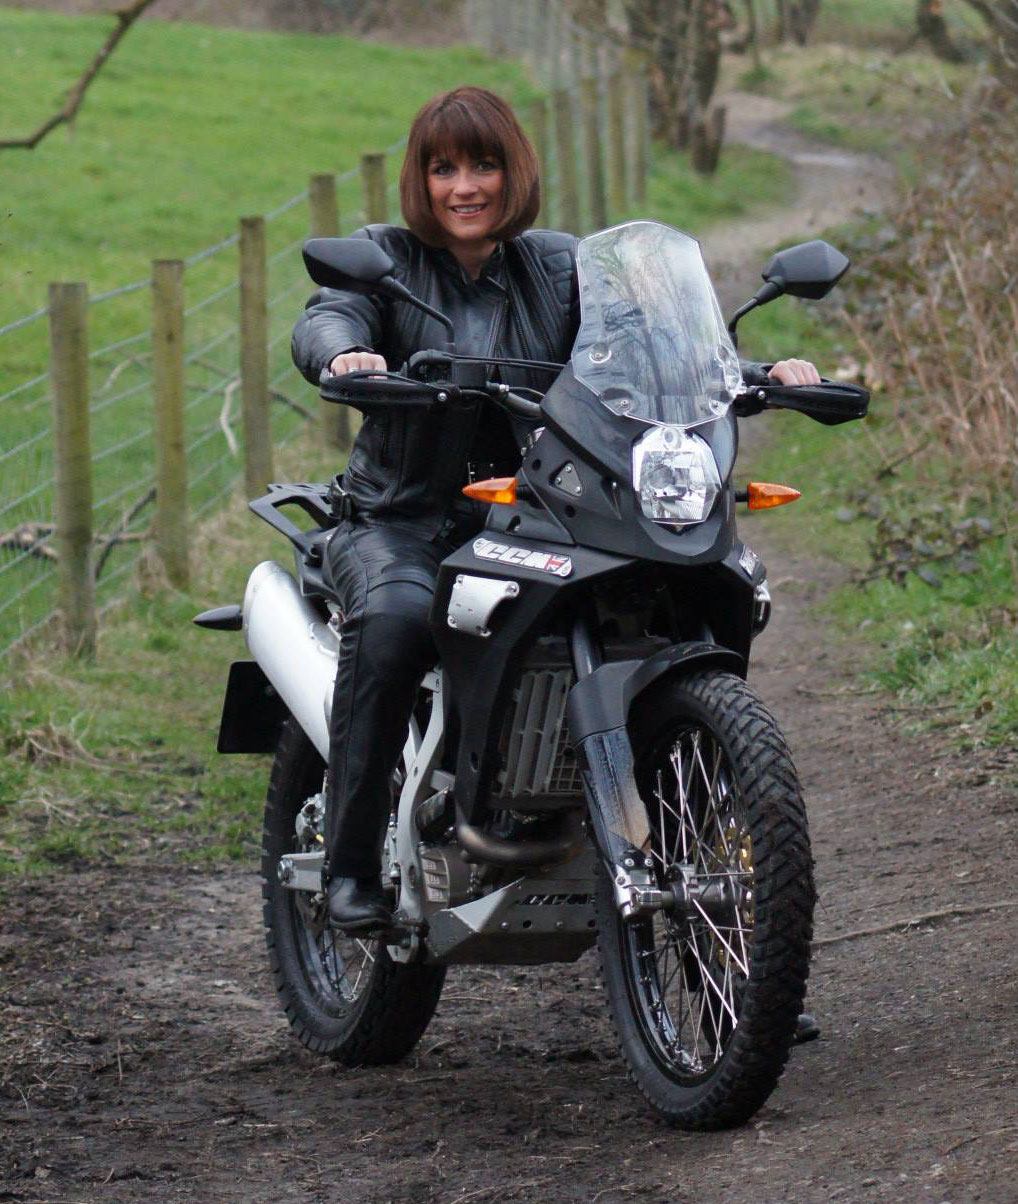 Motorcycles for short female riders